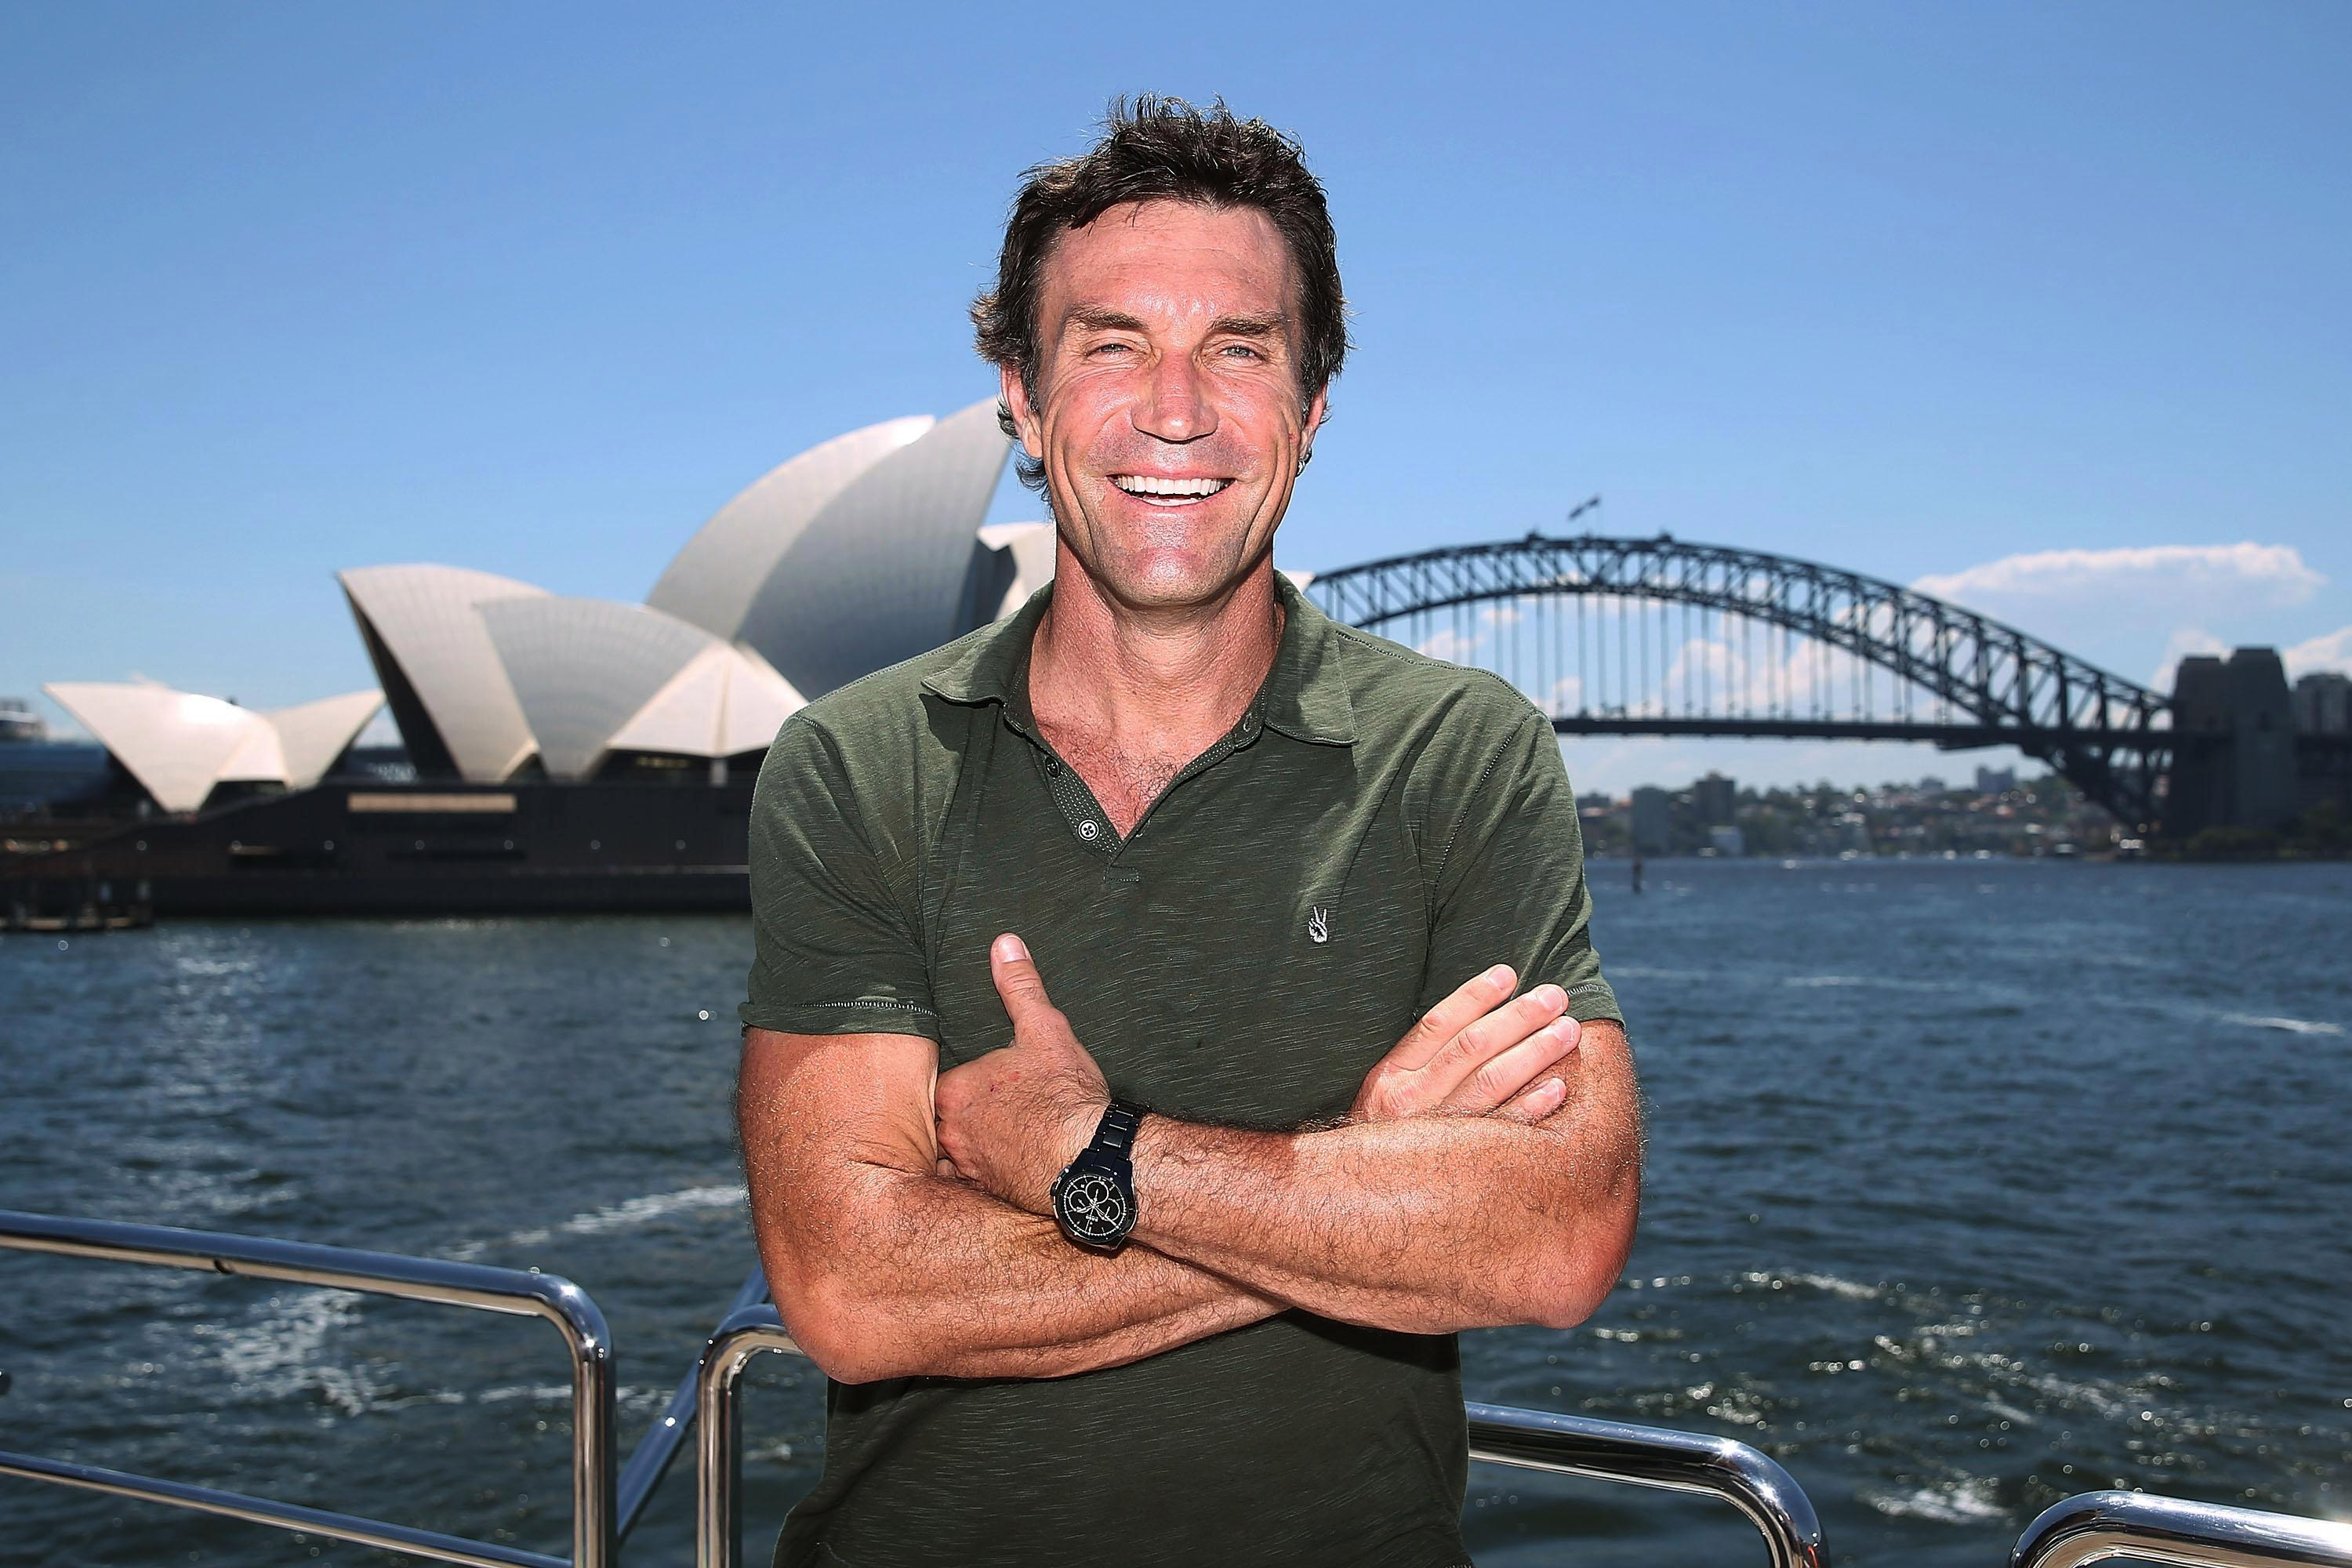 Pat Cash Sports Endorsement